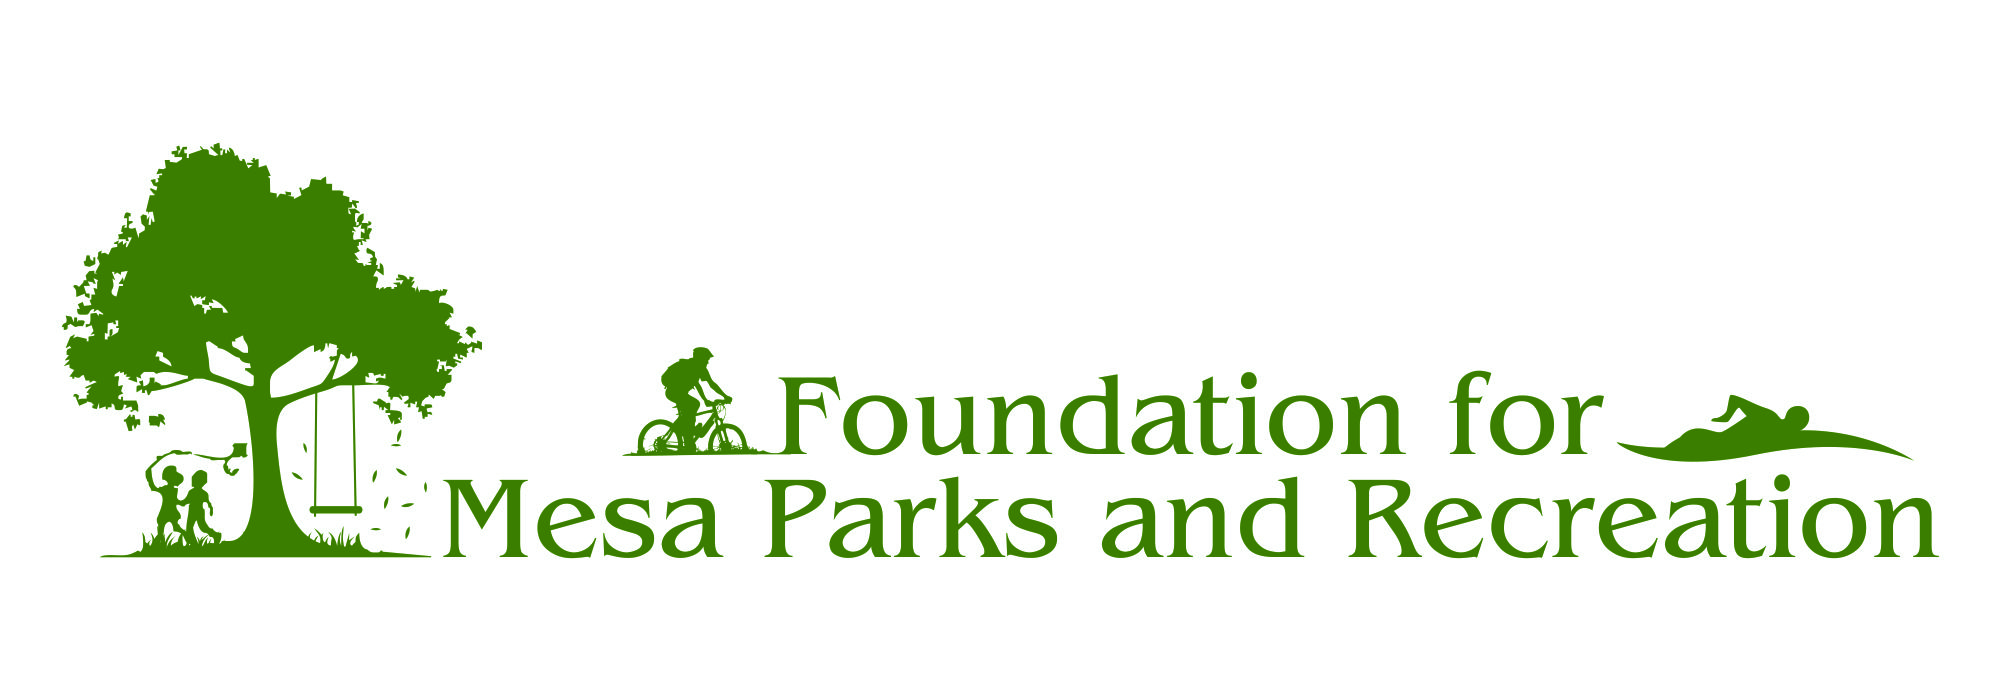 Foundation for Mesa Parks and Recreation